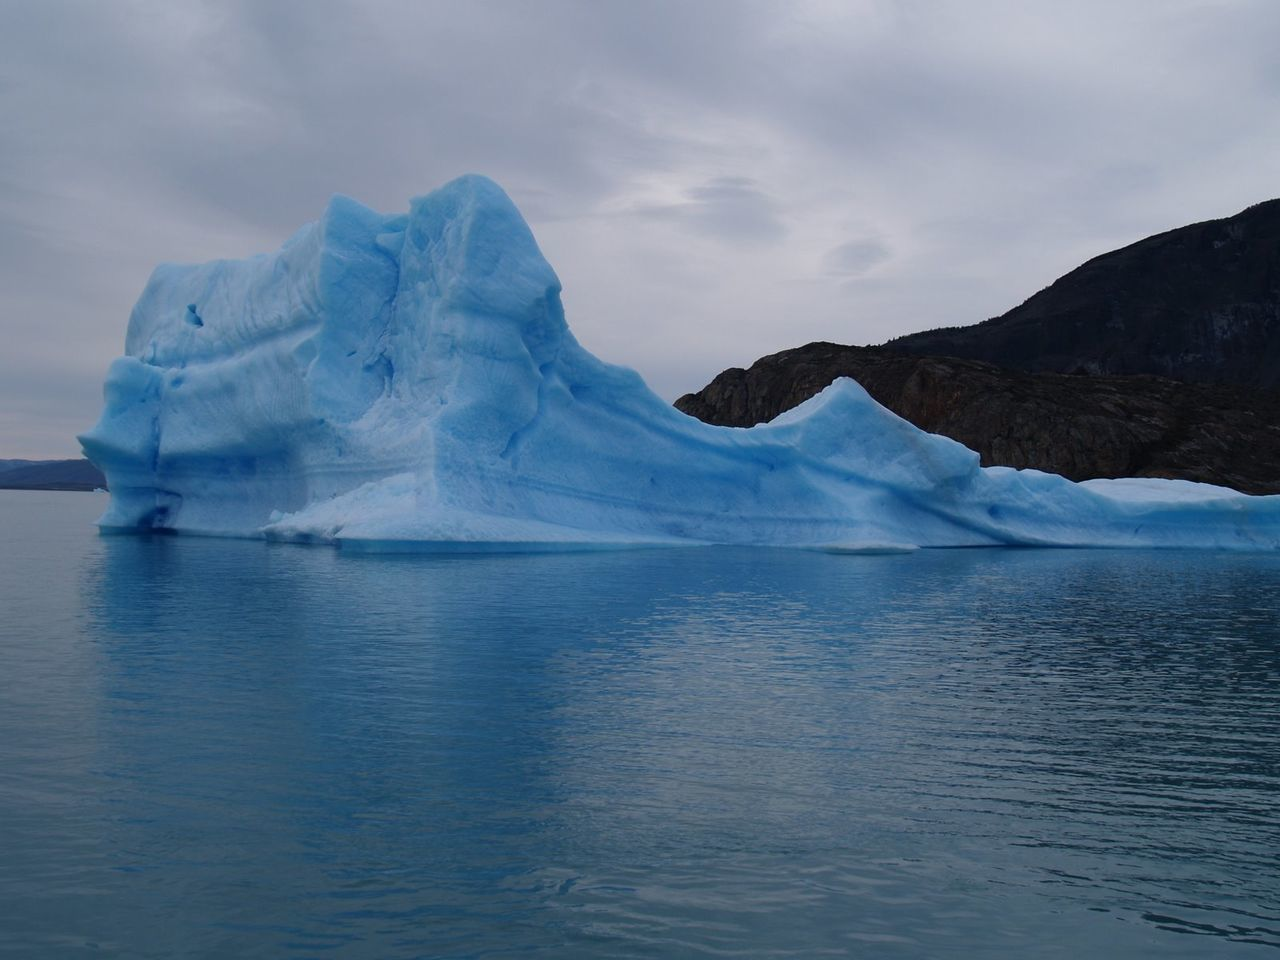 waterfront, glacier, beauty in nature, nature, iceberg, ice, cold temperature, water, tranquility, scenics, lake, no people, mountain, sky, outdoors, day, glacial